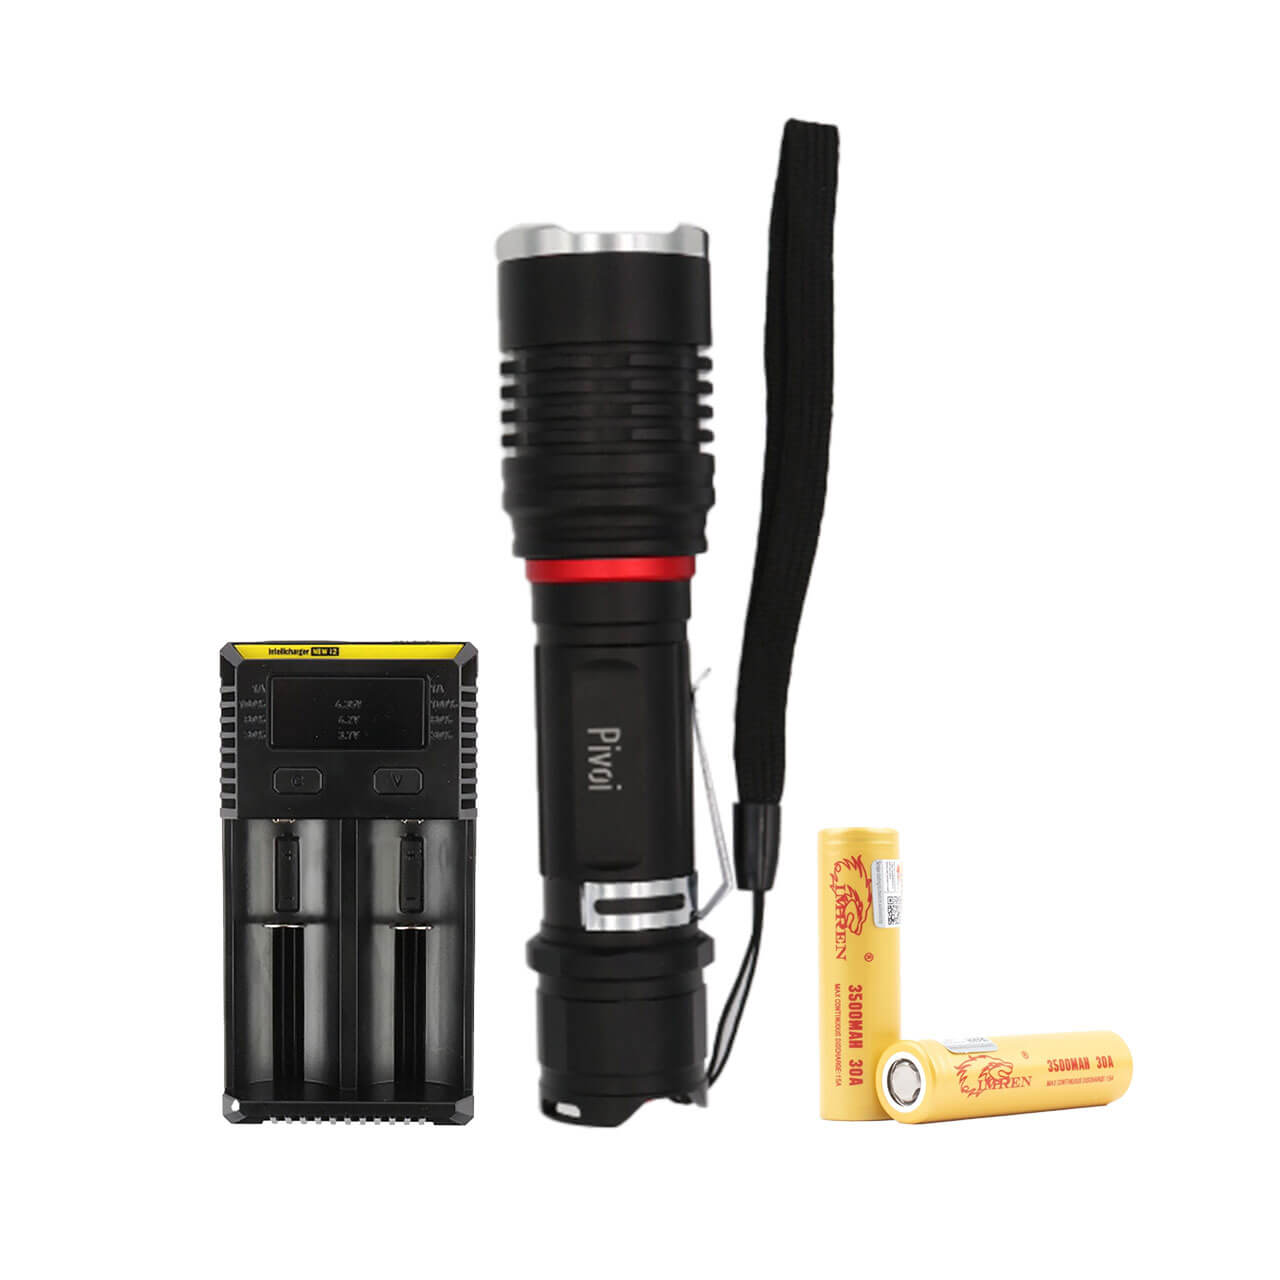 10W LED Rechargeable Flashlight with NiteCore I2 IntellCharger and 2 x 18650 Battery